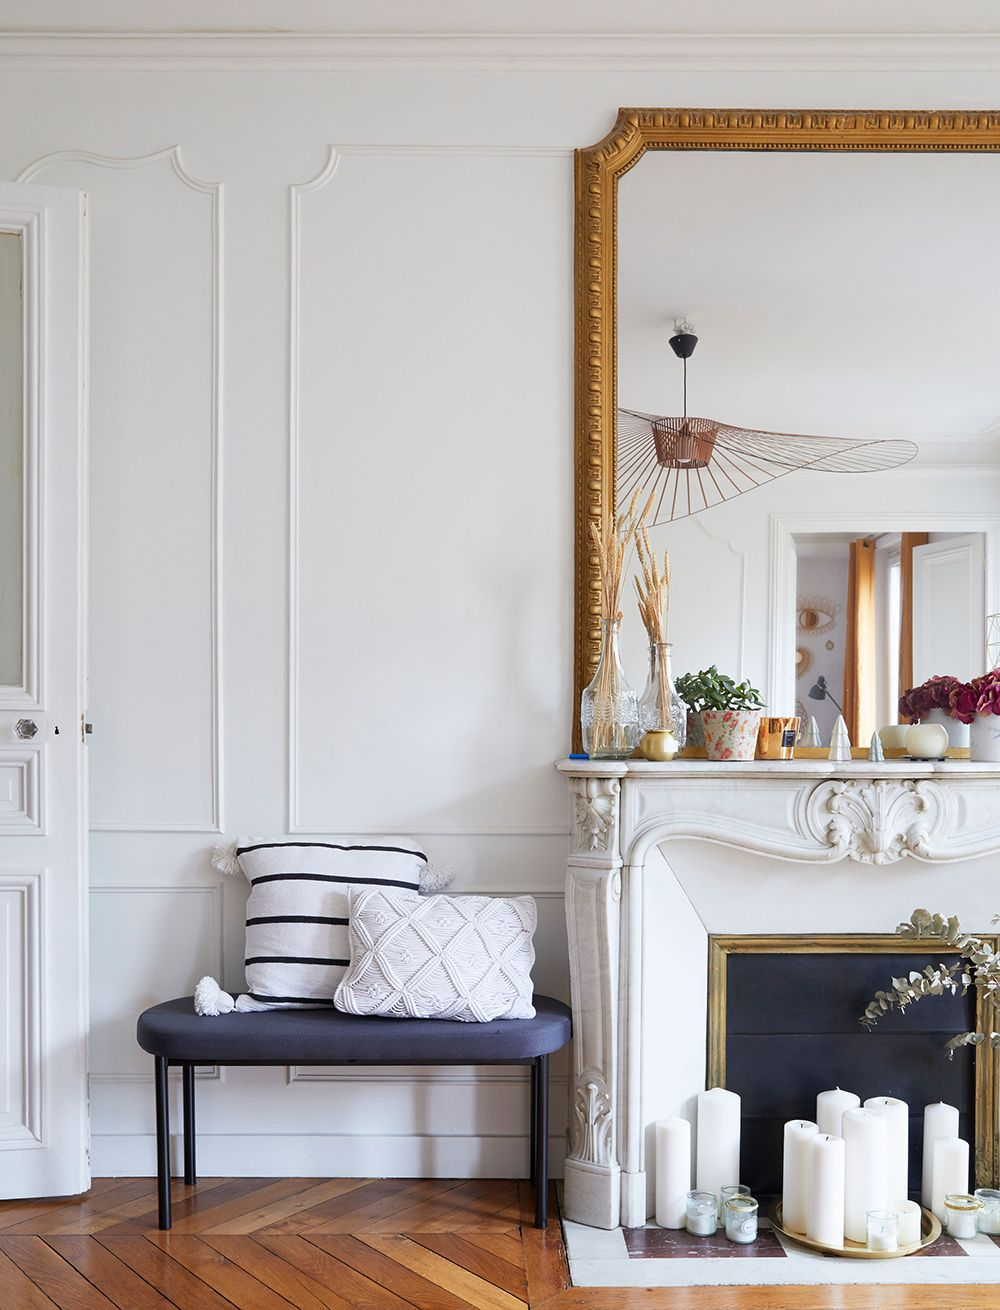 Parisian fireplace decor with White candles in front of opening via Cup of Jo